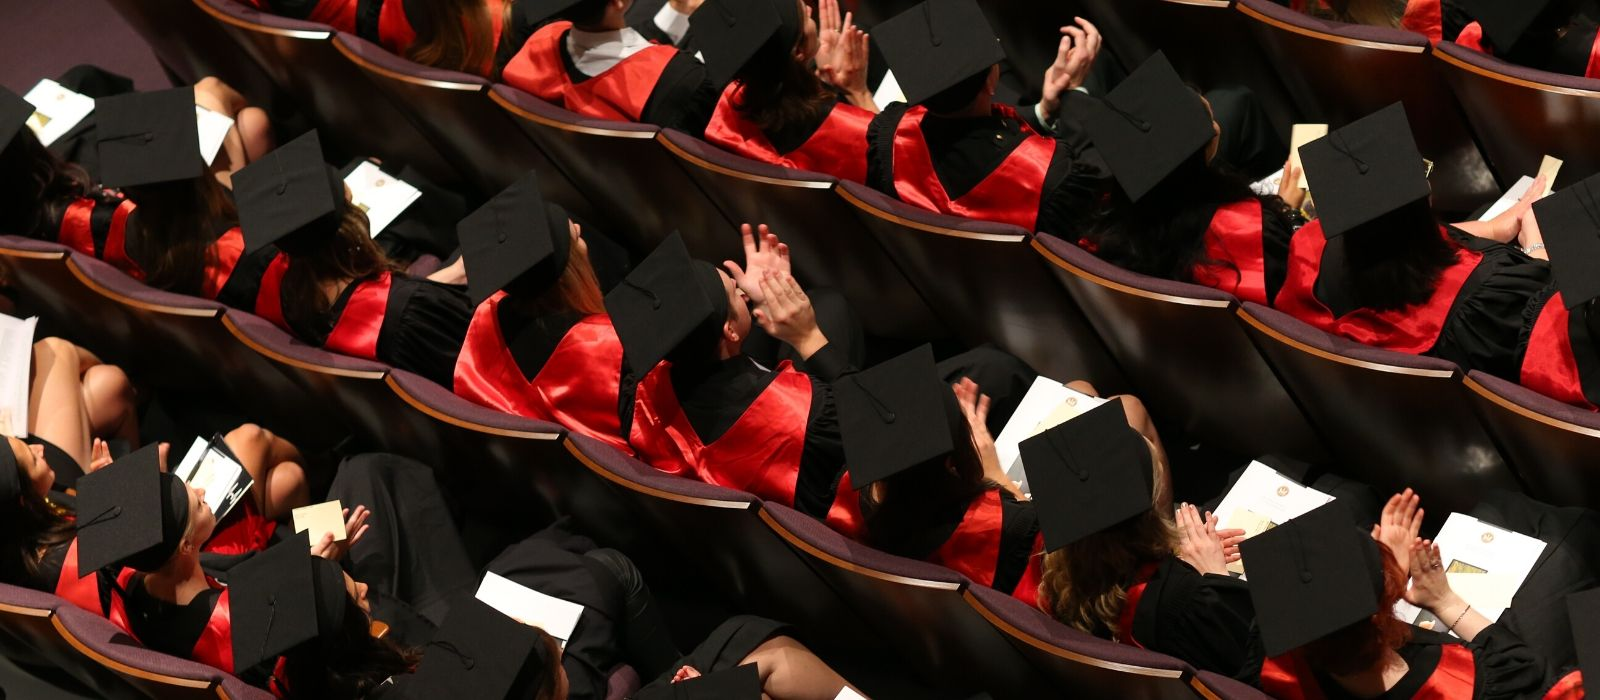 An aerial view of university graduates sitting in an auditorium wearing graduation caps, gowns and red sashes.